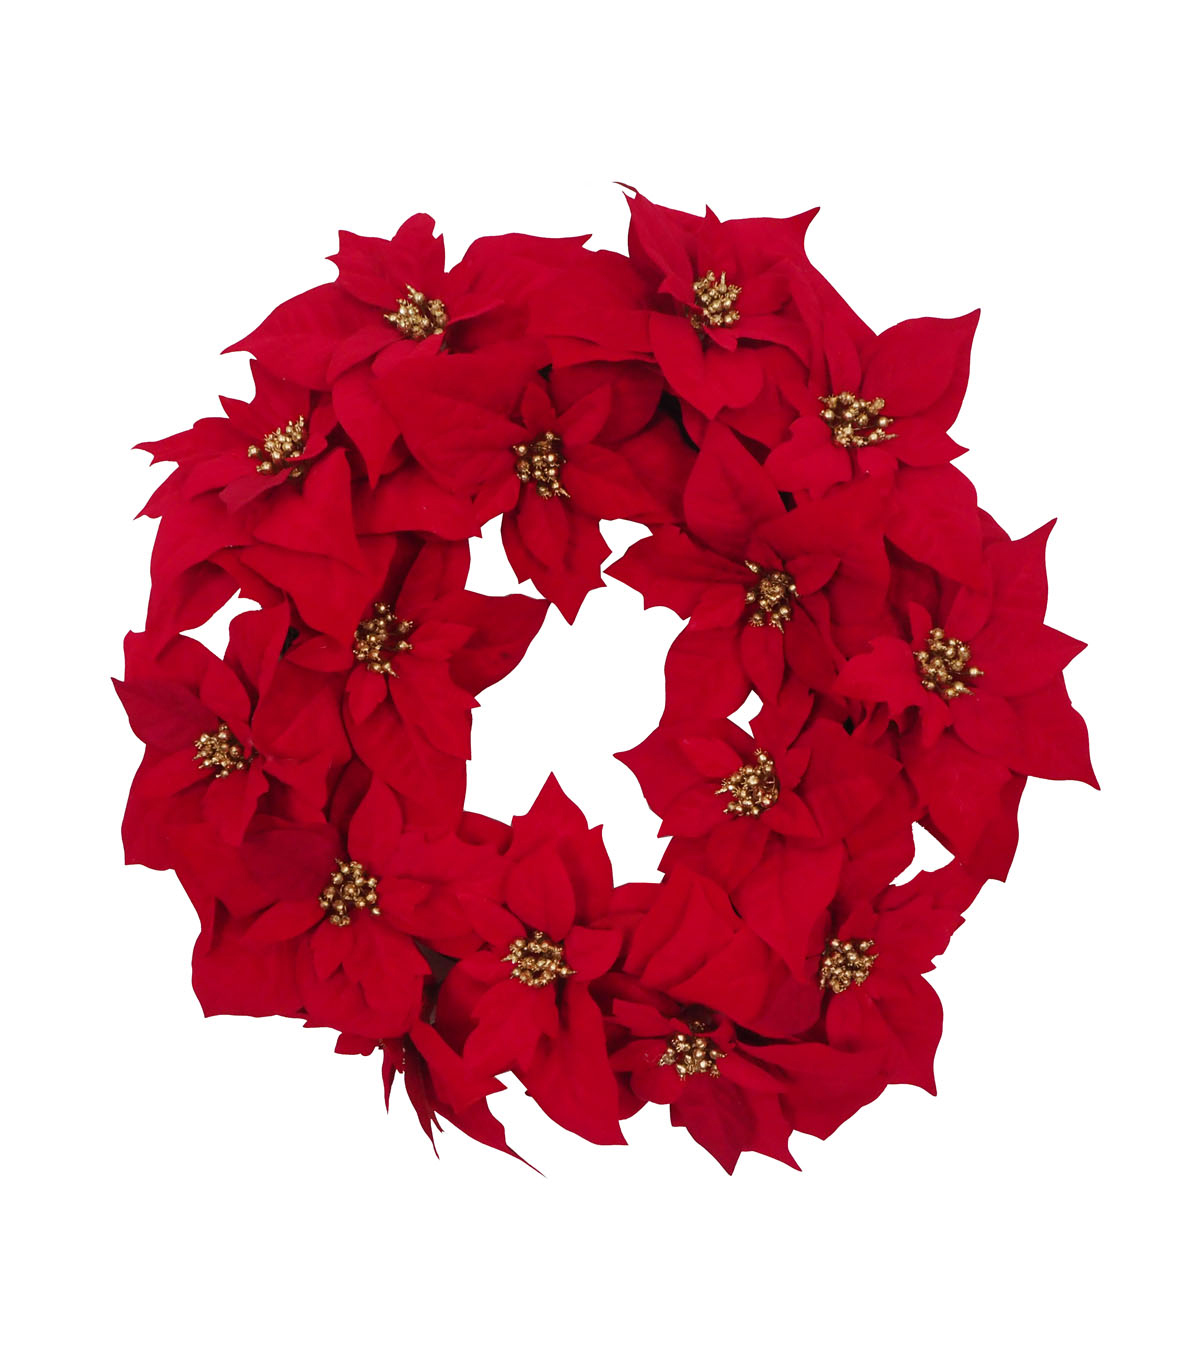 Blooming Holiday 24 All Over Red Poinsettia Wreath Joann